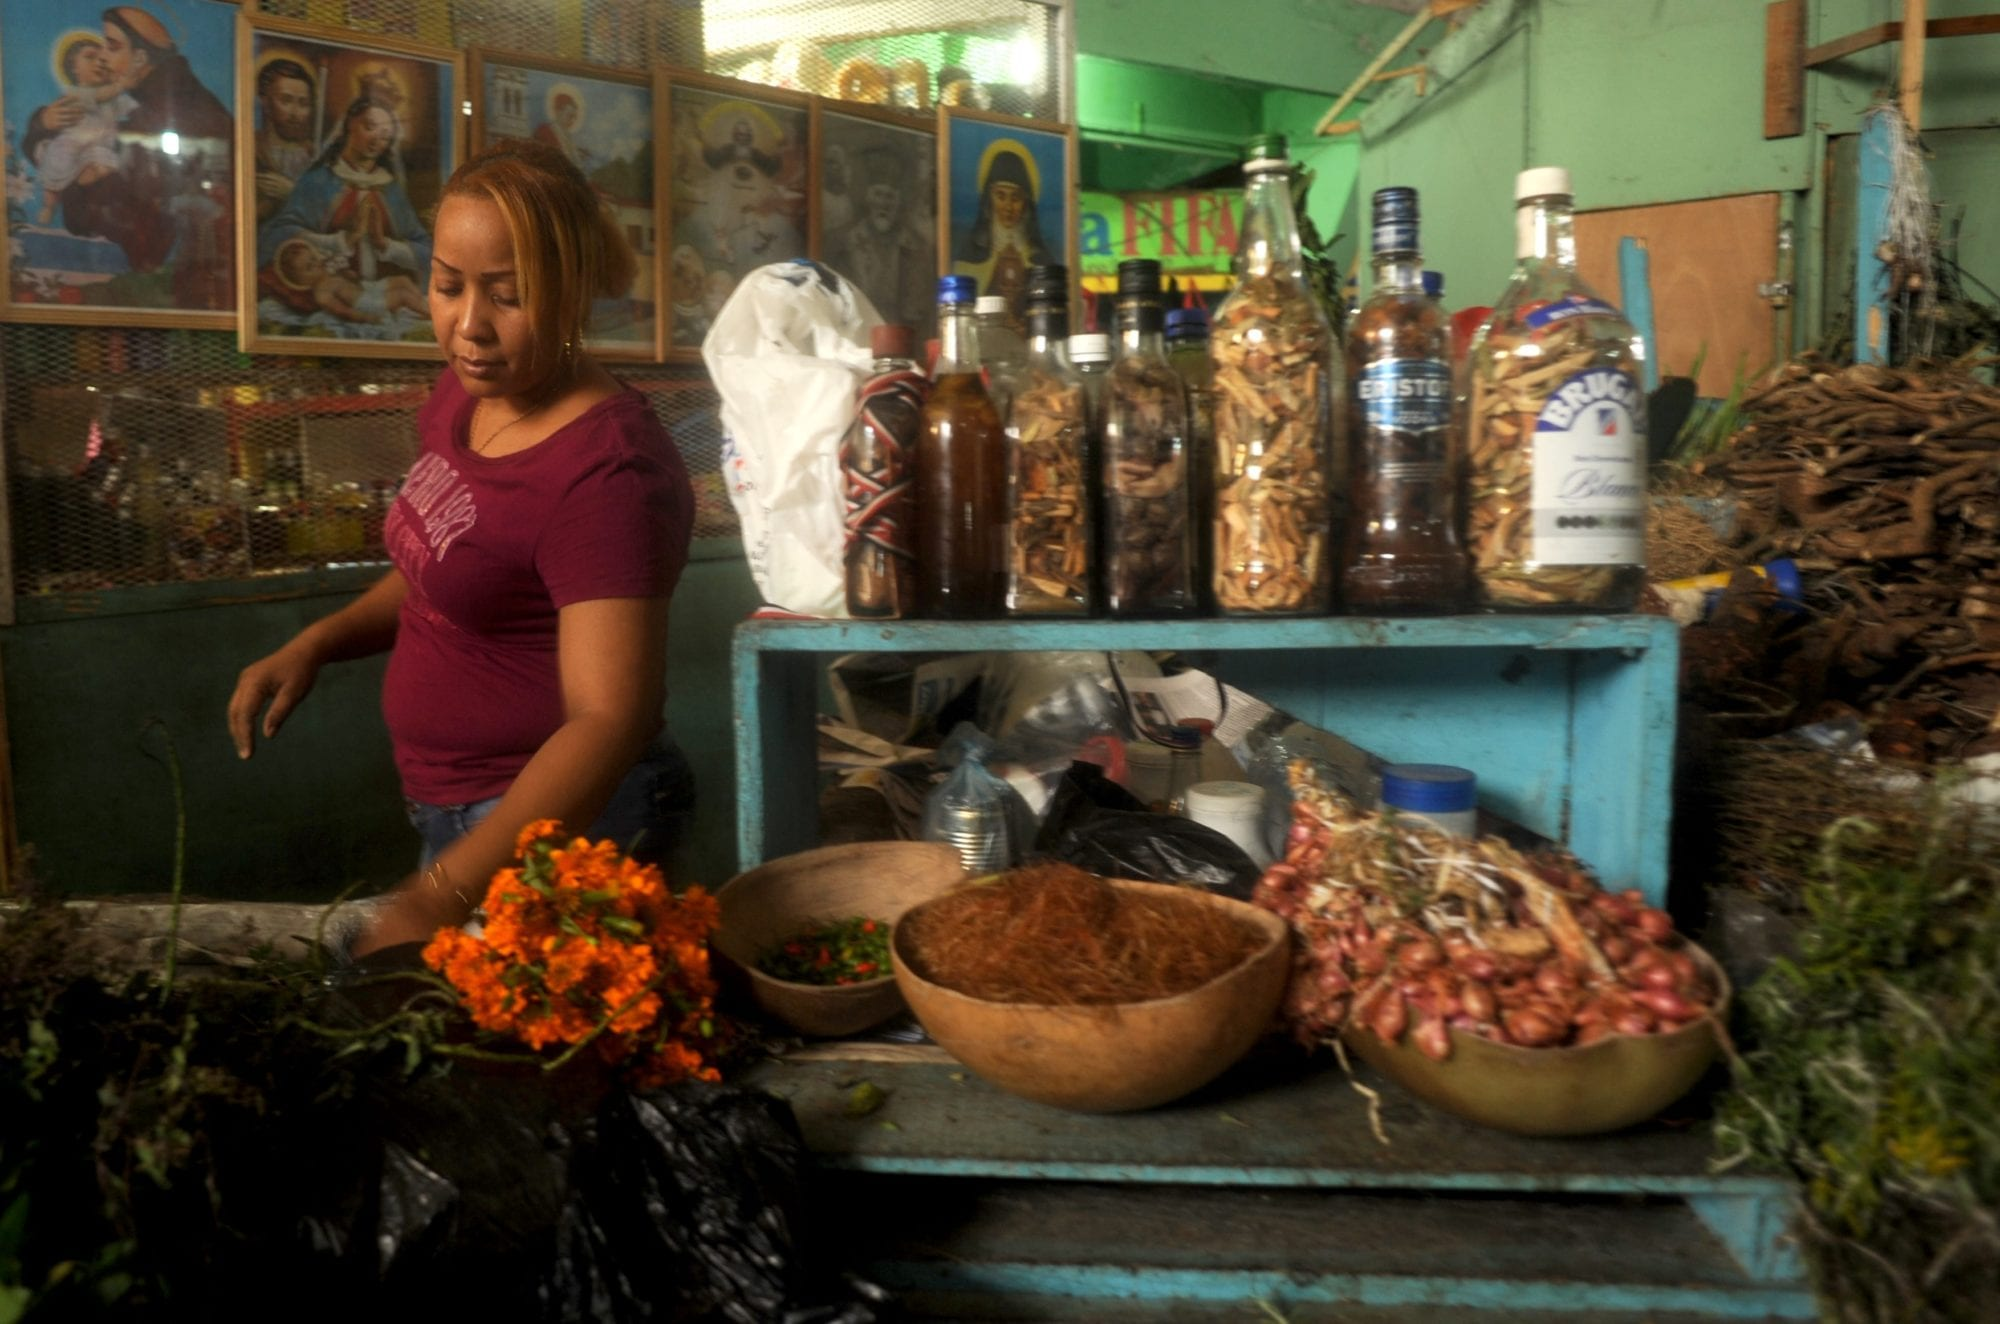 Dominican Republic, informal economy, Solidarity Center